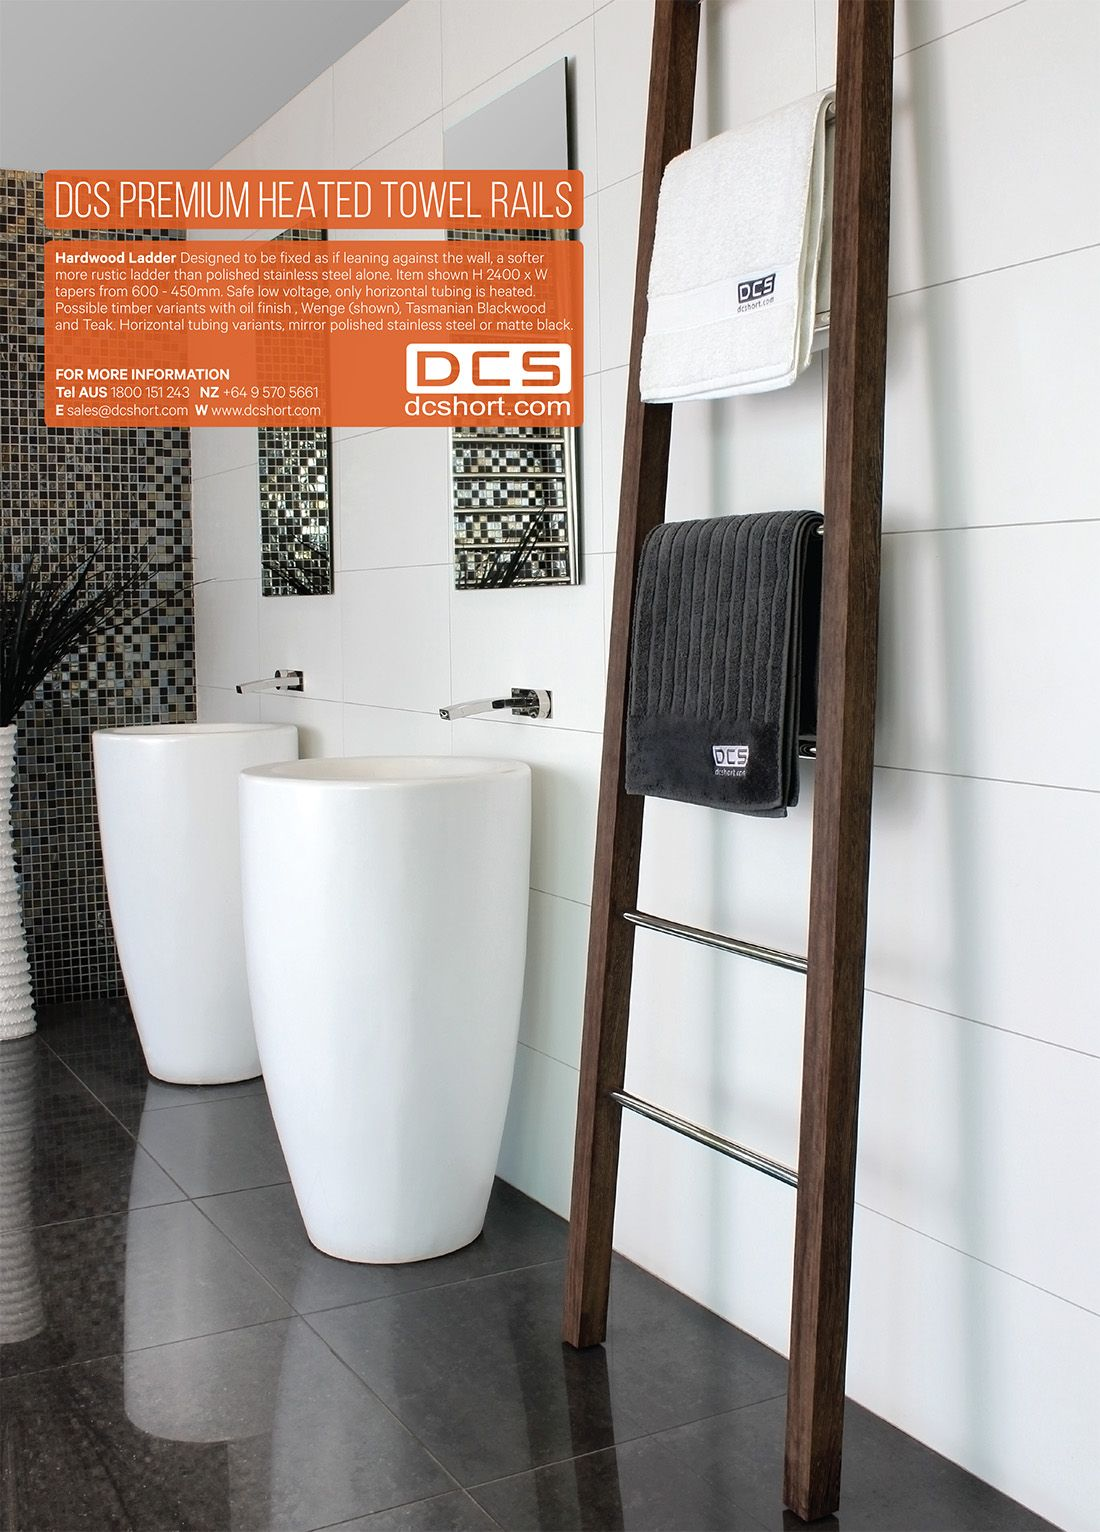 Urbis Aug2015 - DCS Heated Towel Rails.